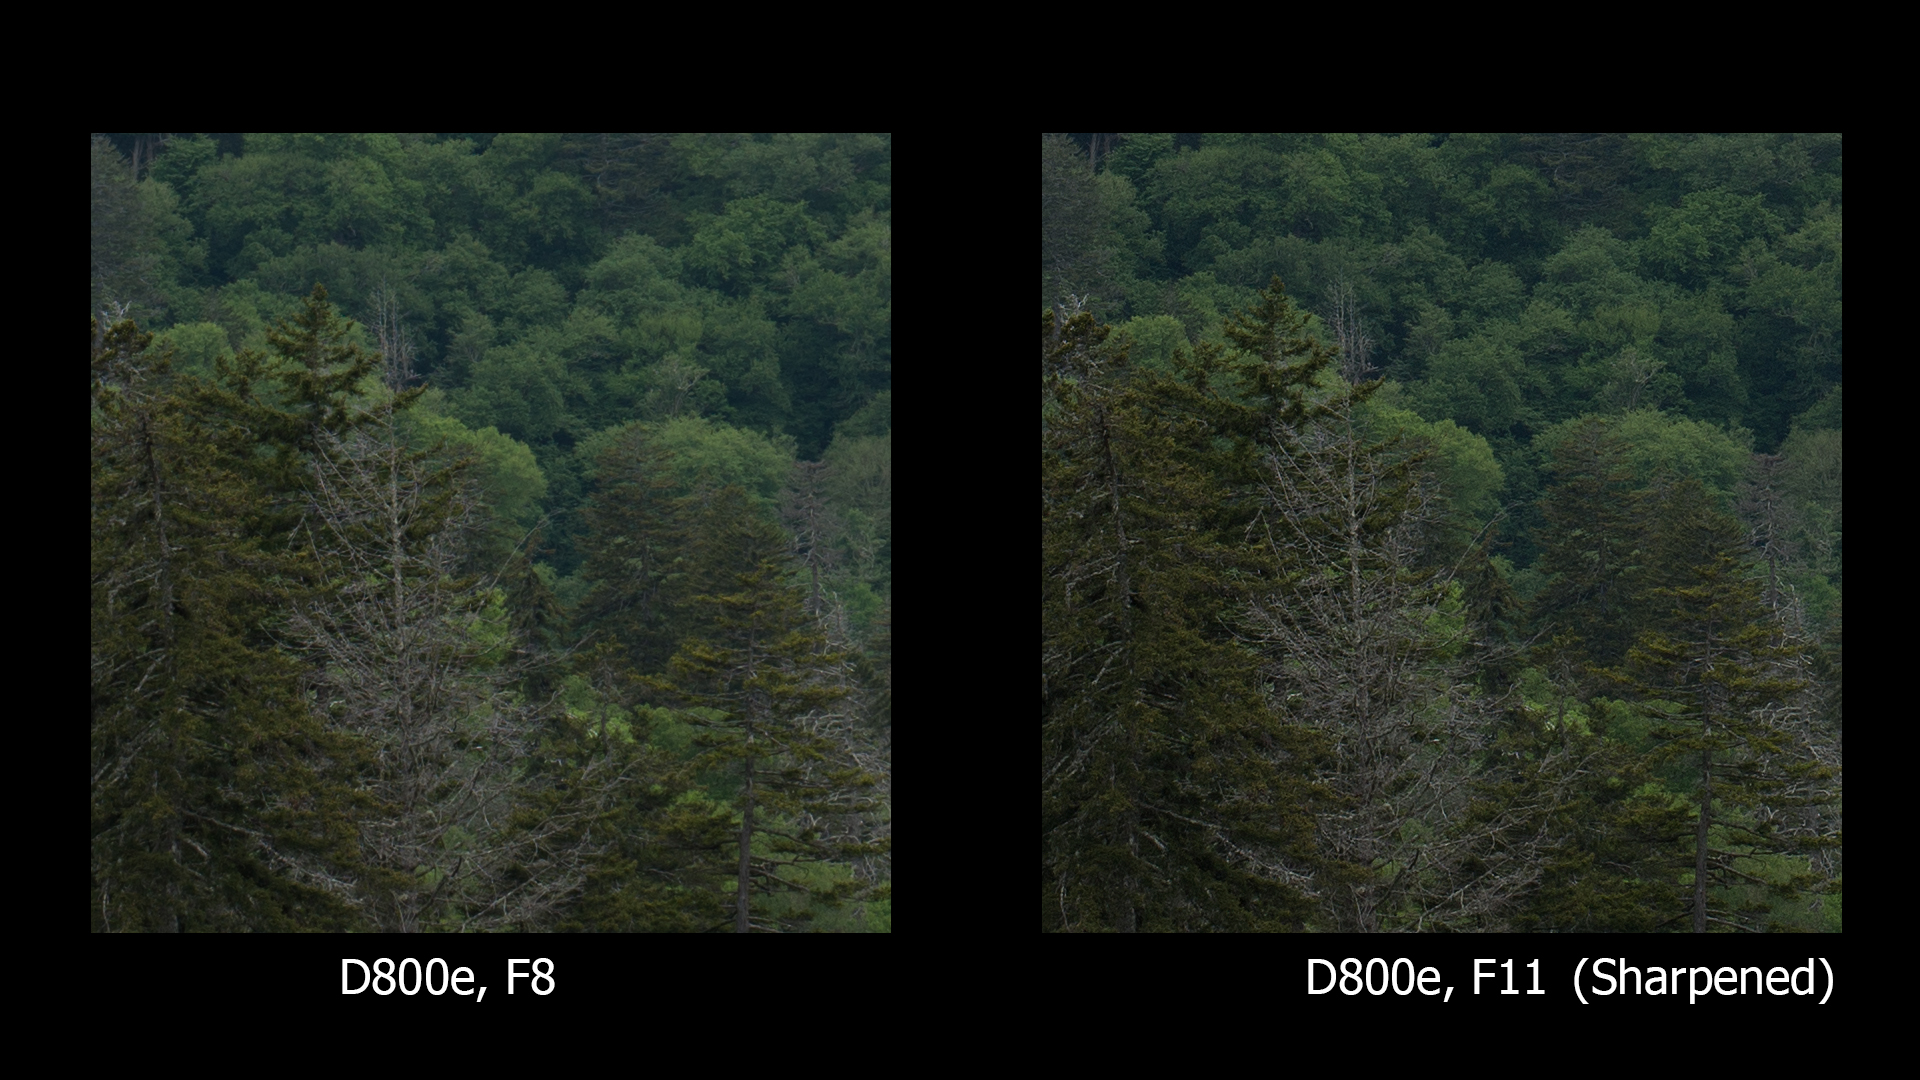 D800e, F8 and F11, ONLY F11 sharpened